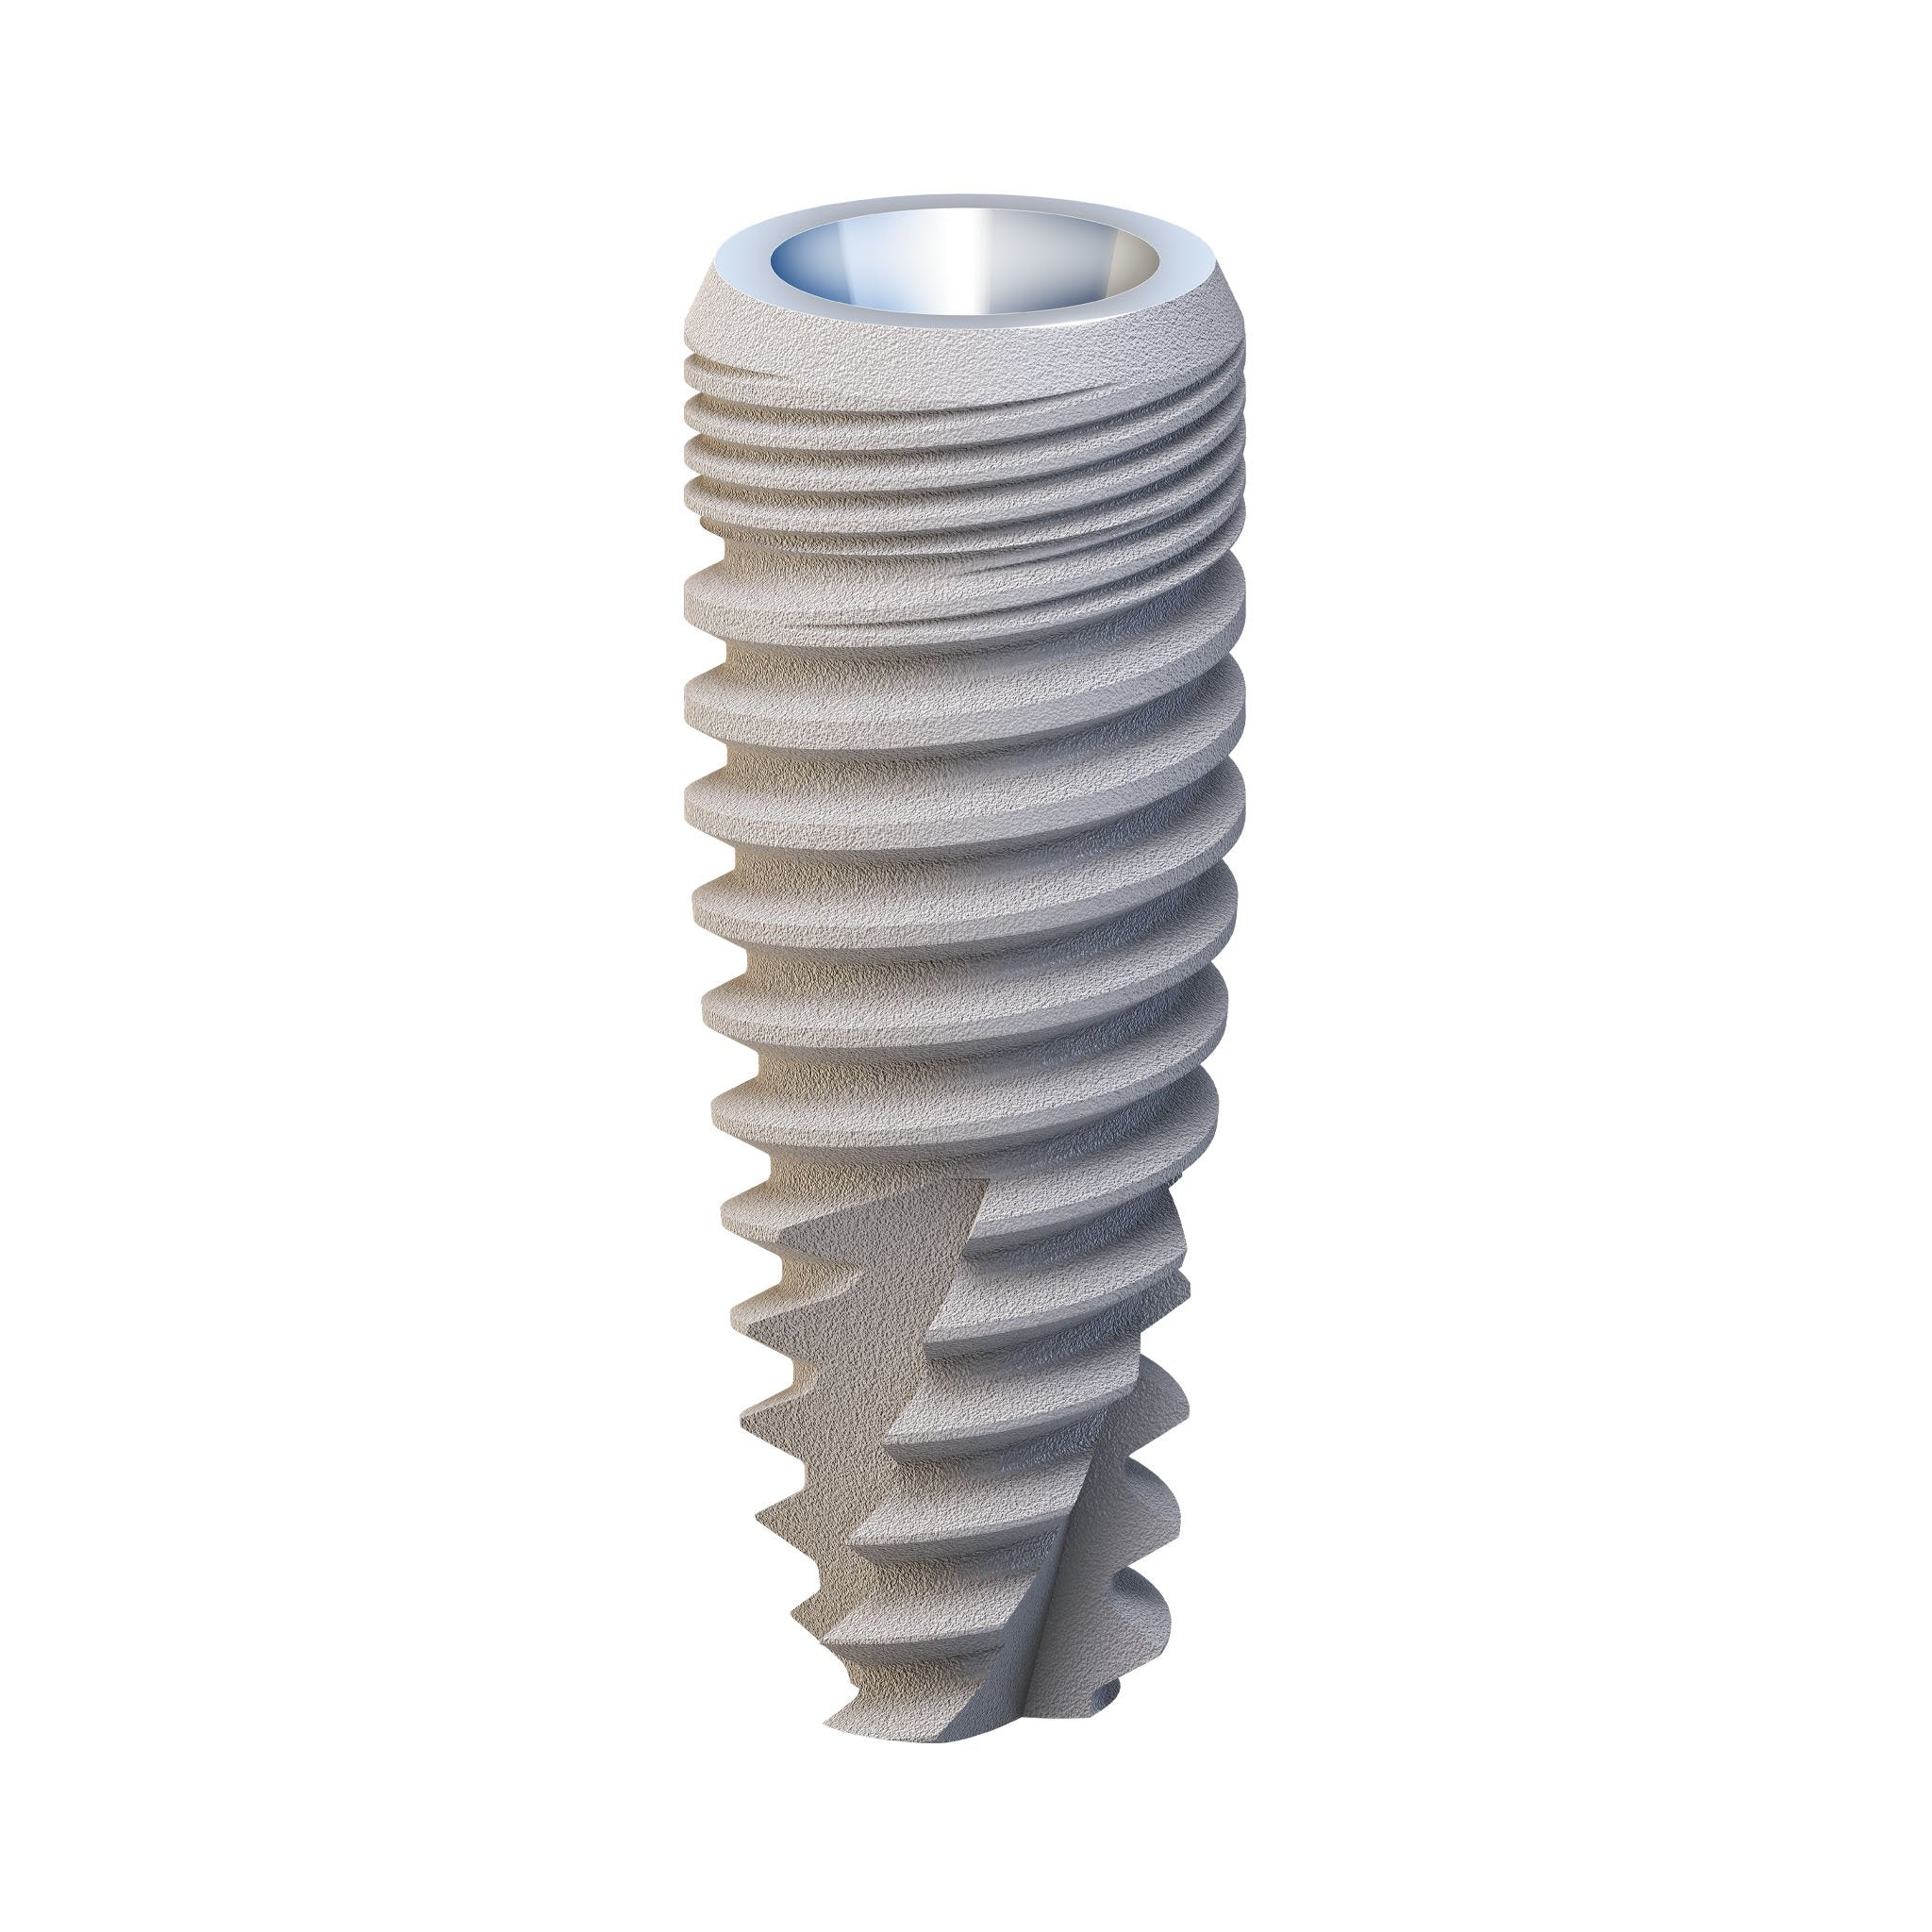 Conical Active Implant Ø 4.2 x 10mm | K3